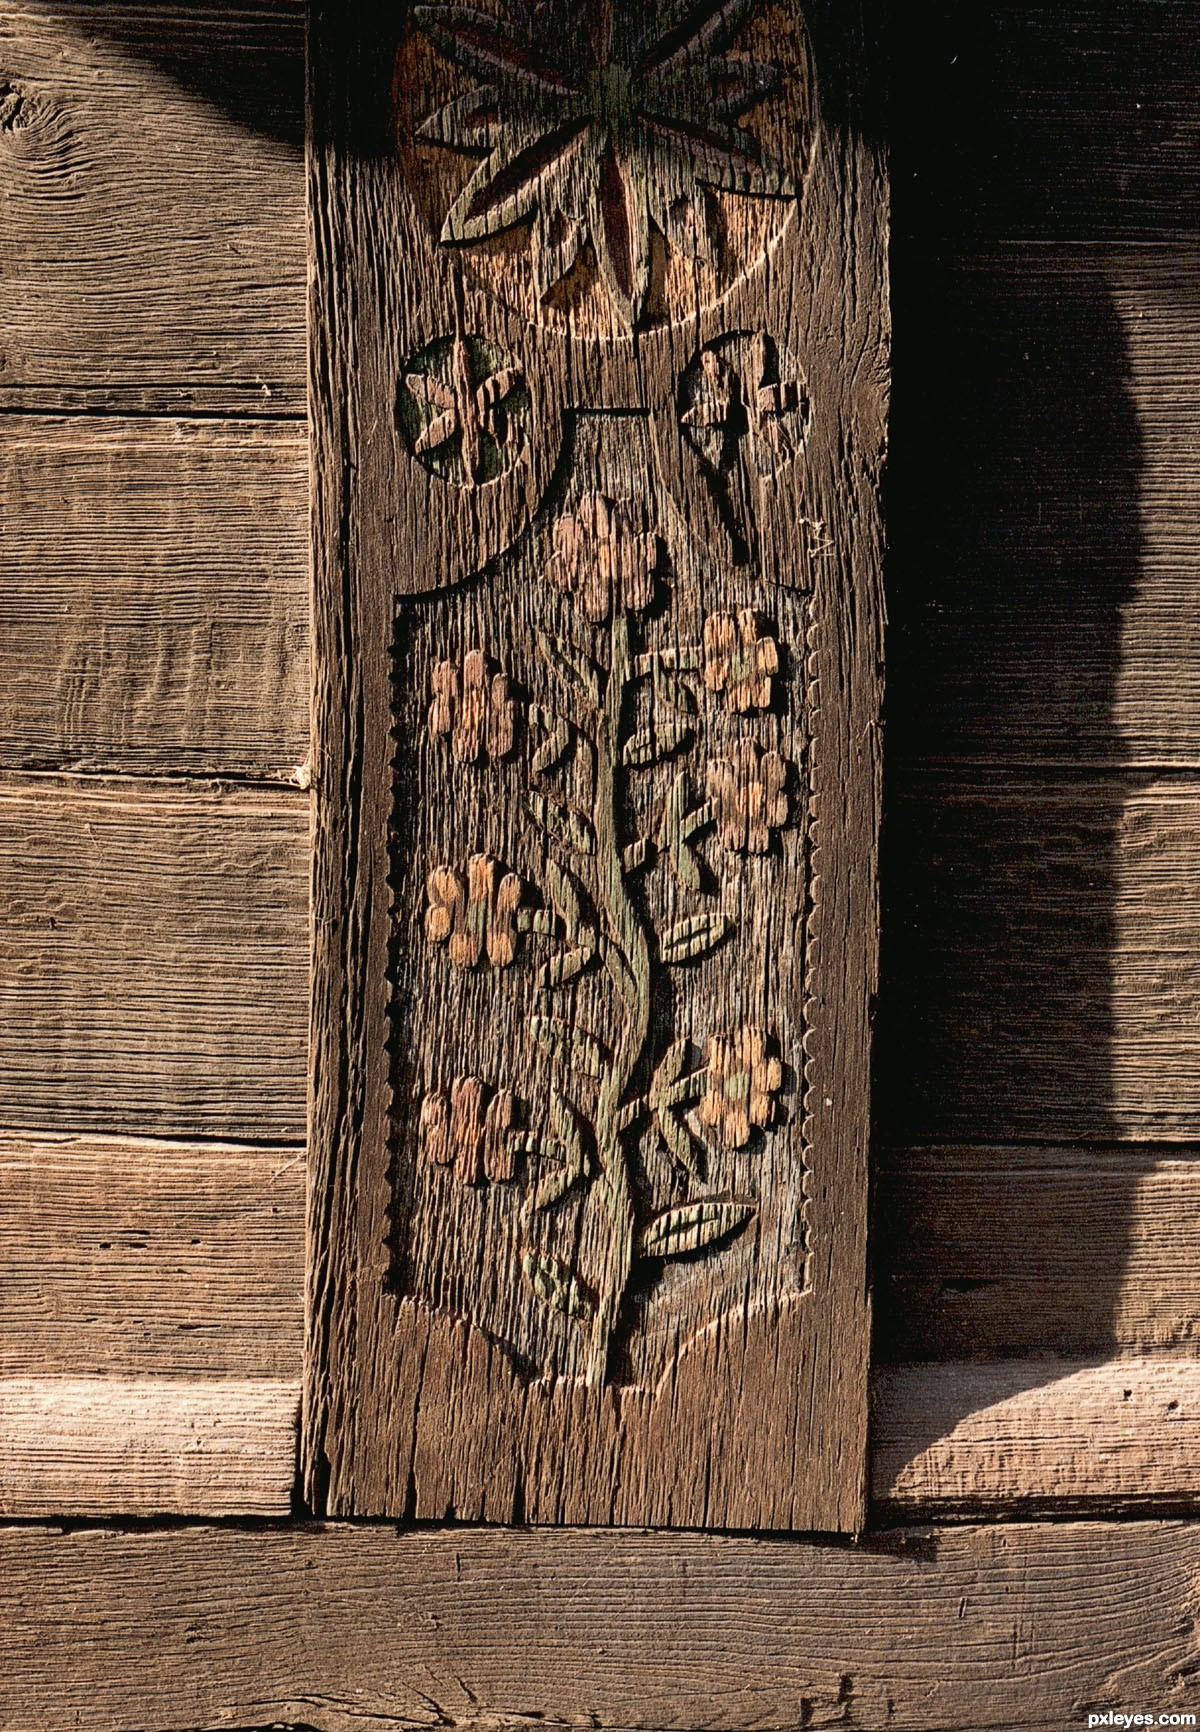 Old barn wood-carving - created by nemark